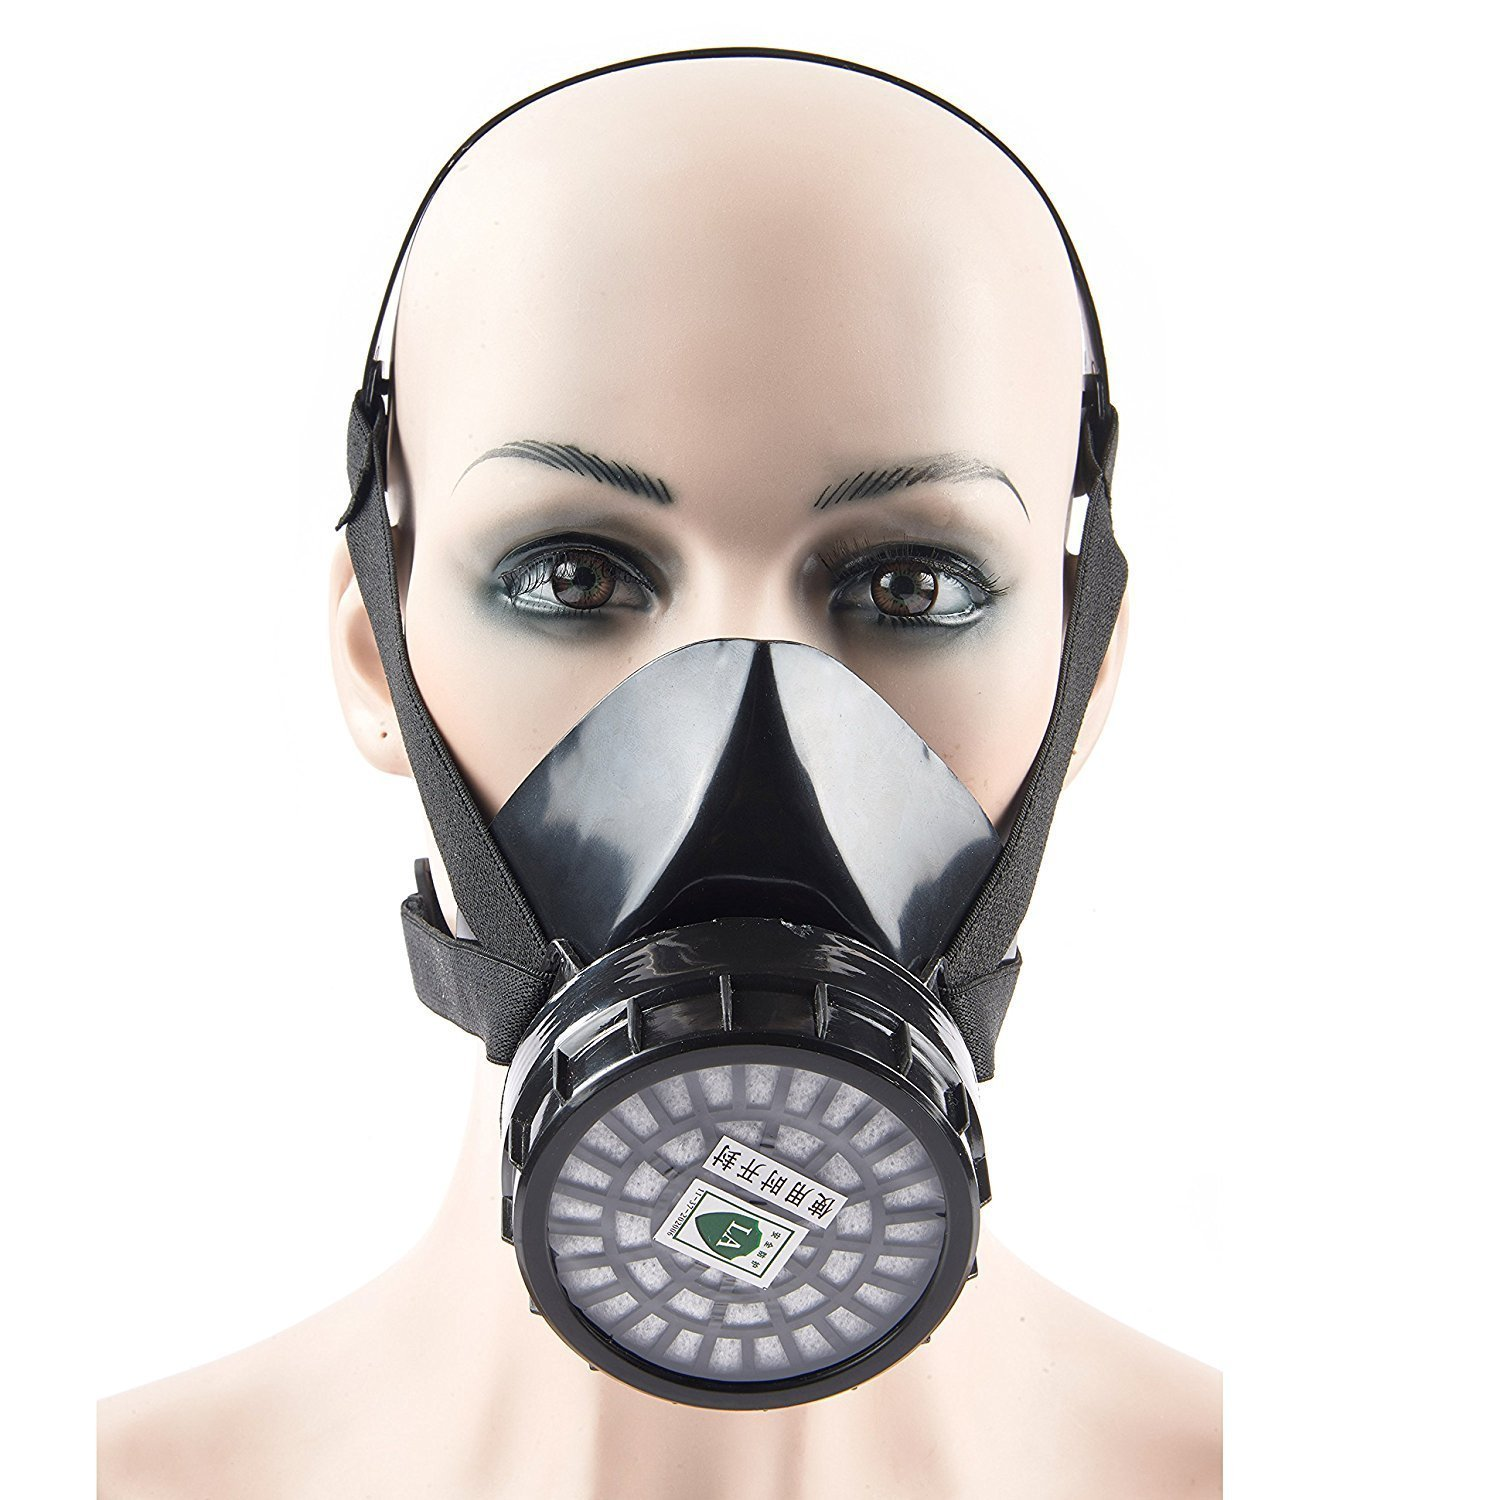 Mufly Reusable Respirator Industrial Gas Chemical Anti-Dust Paint and Pesticide Respirator Mask with Adjustable Straps